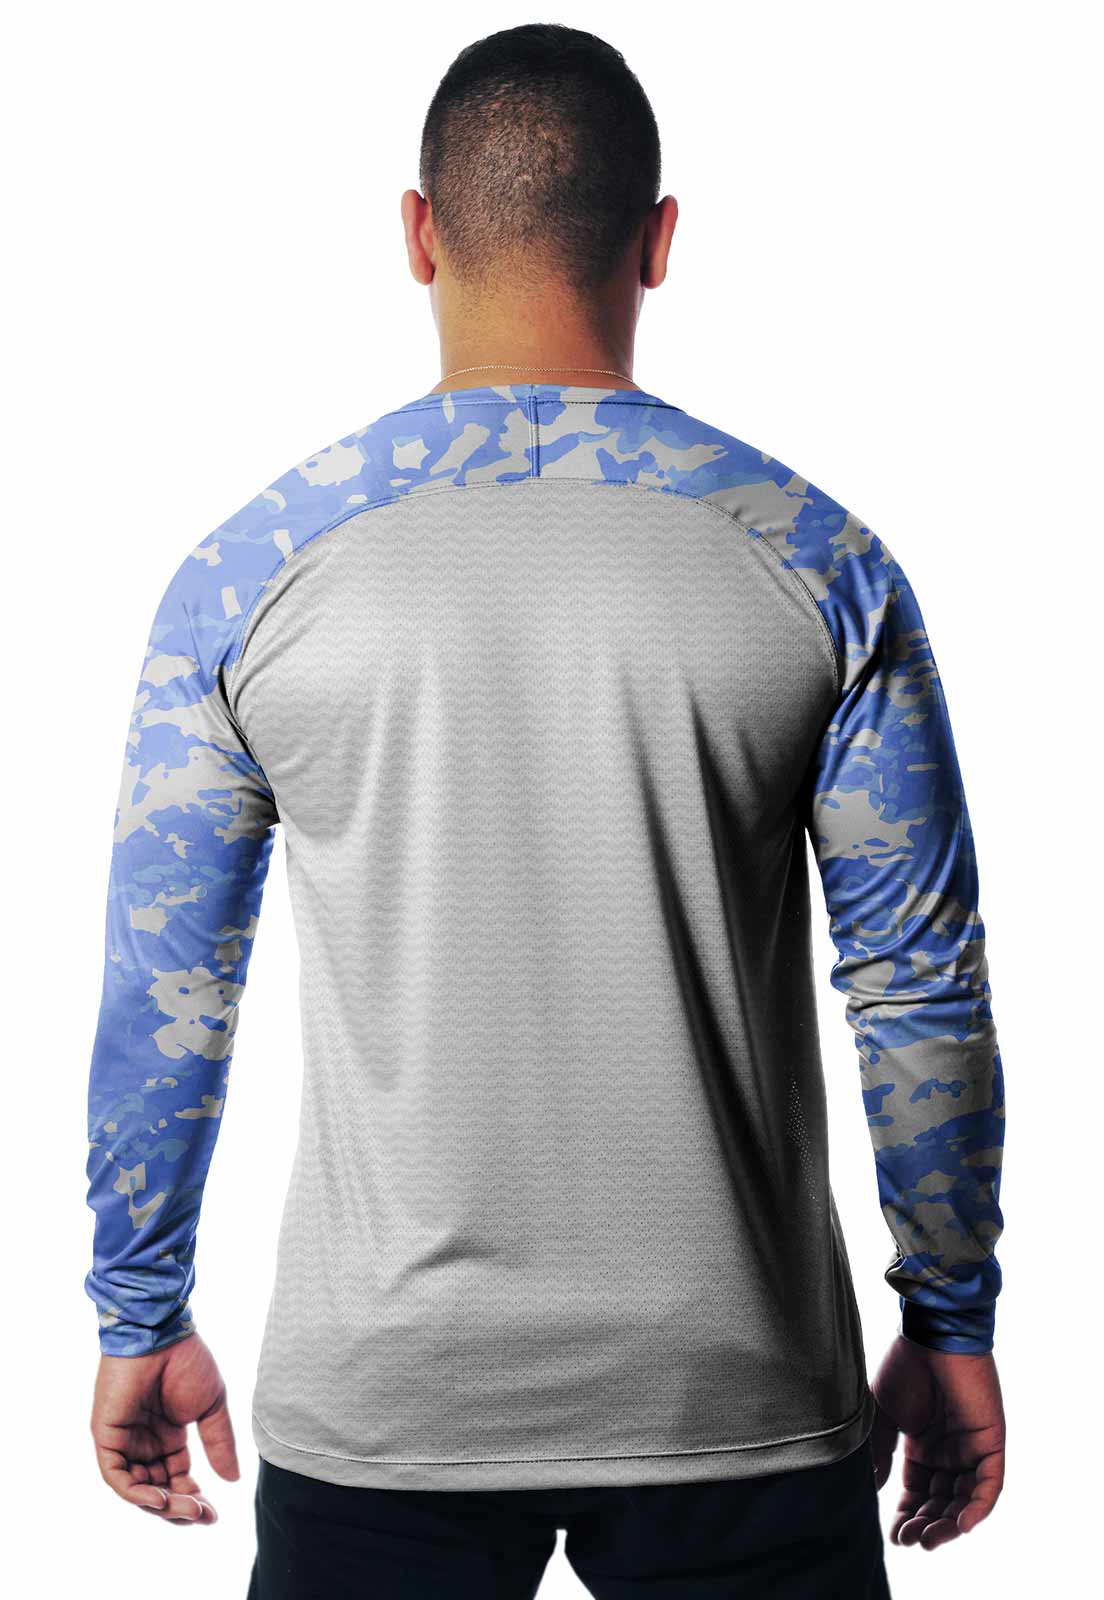 CAMISETA CAMUFLADA LAZER 01 MANGA LONGA MASCULINA - REAL HUNTER OUTDOORS